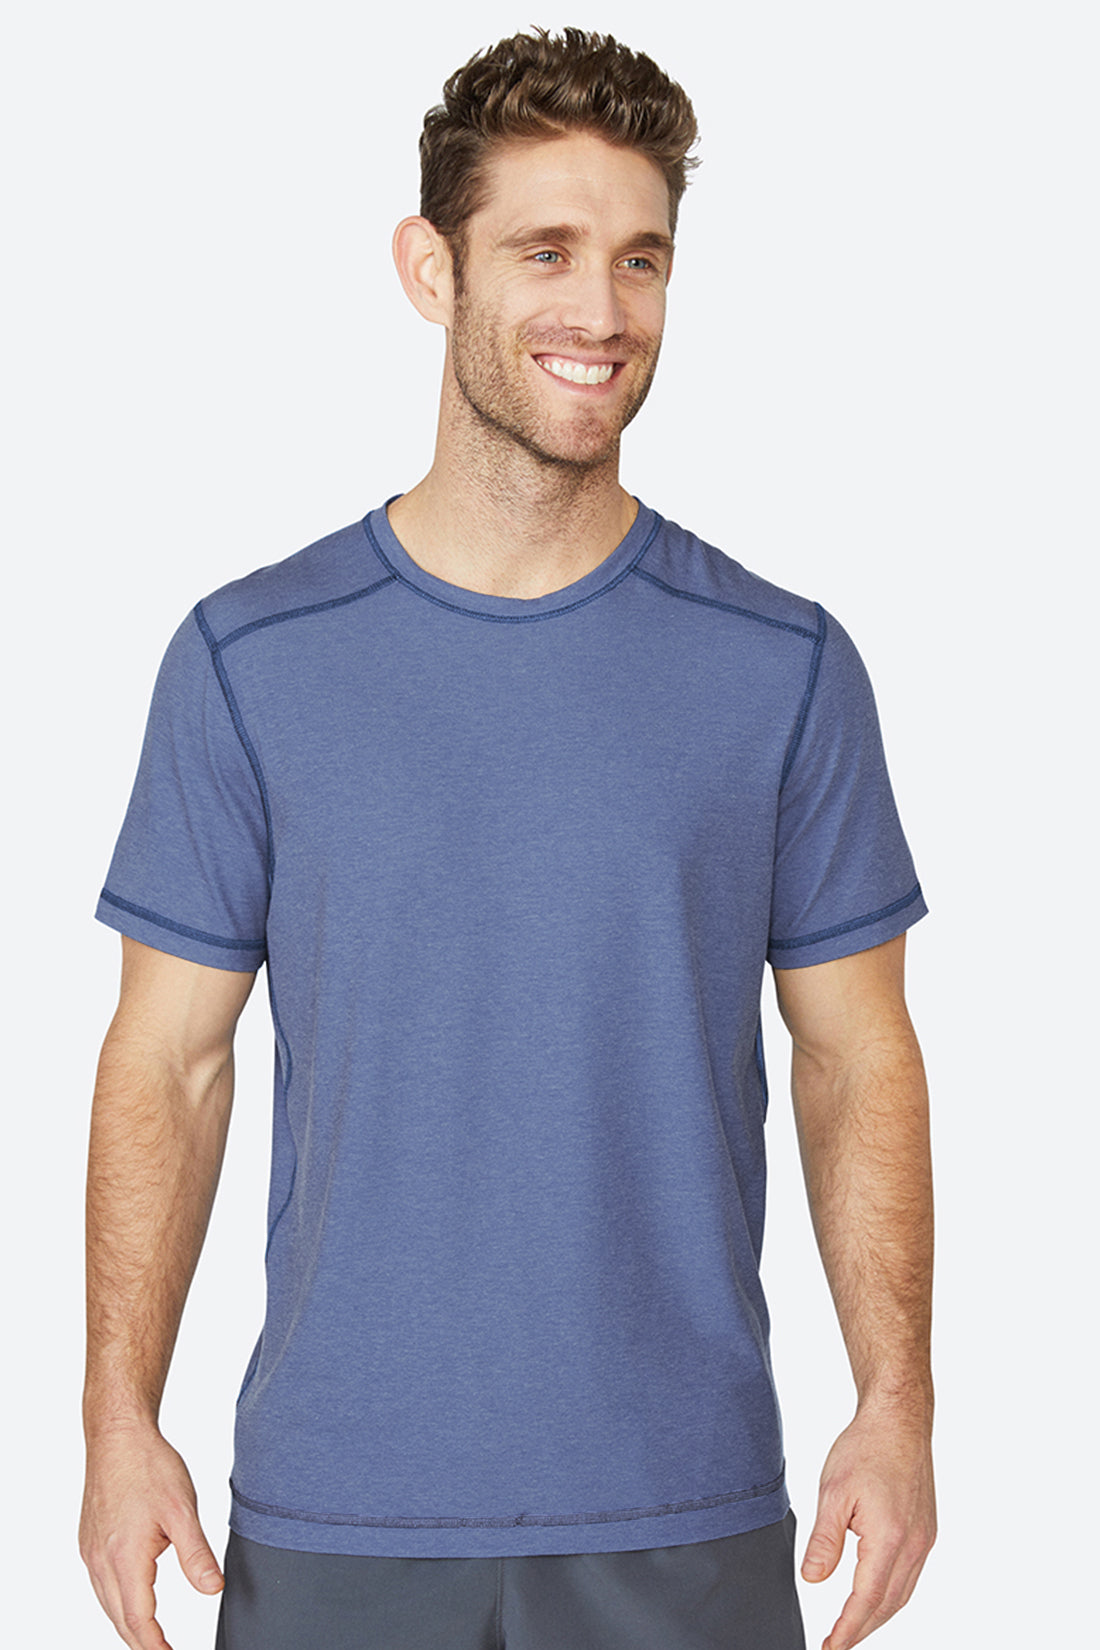 Lightweight, chafing free, sweatwicking, odor resistant, Tech Tee - Heather Blue